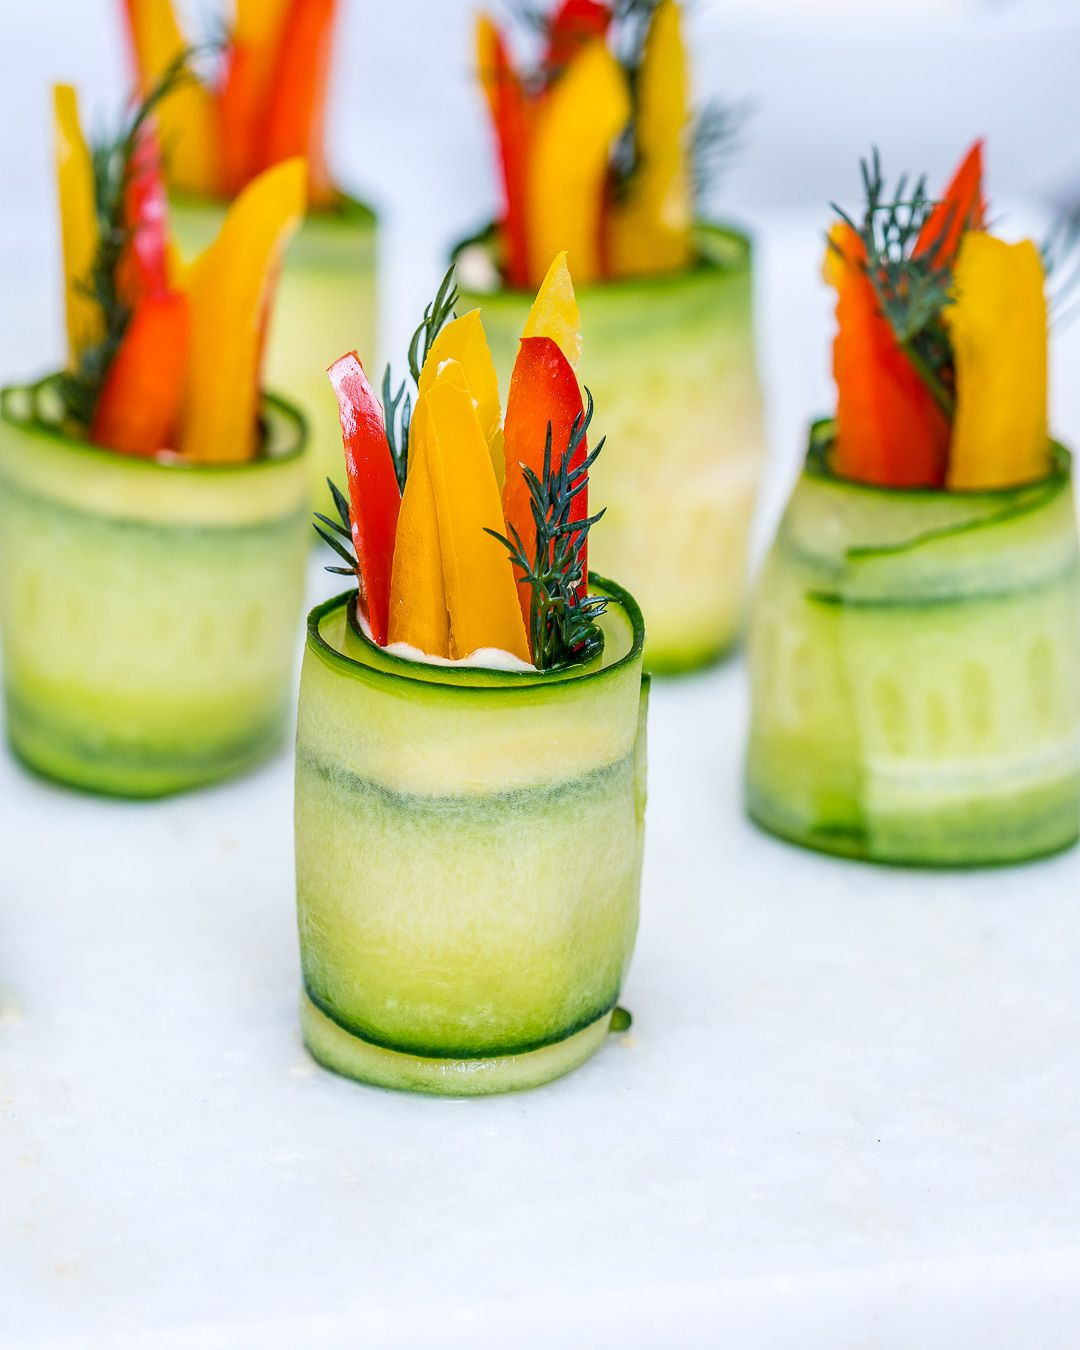 Hummus Cucumber Roll-Ups are GREAT for Entertaining with Clean Eats!